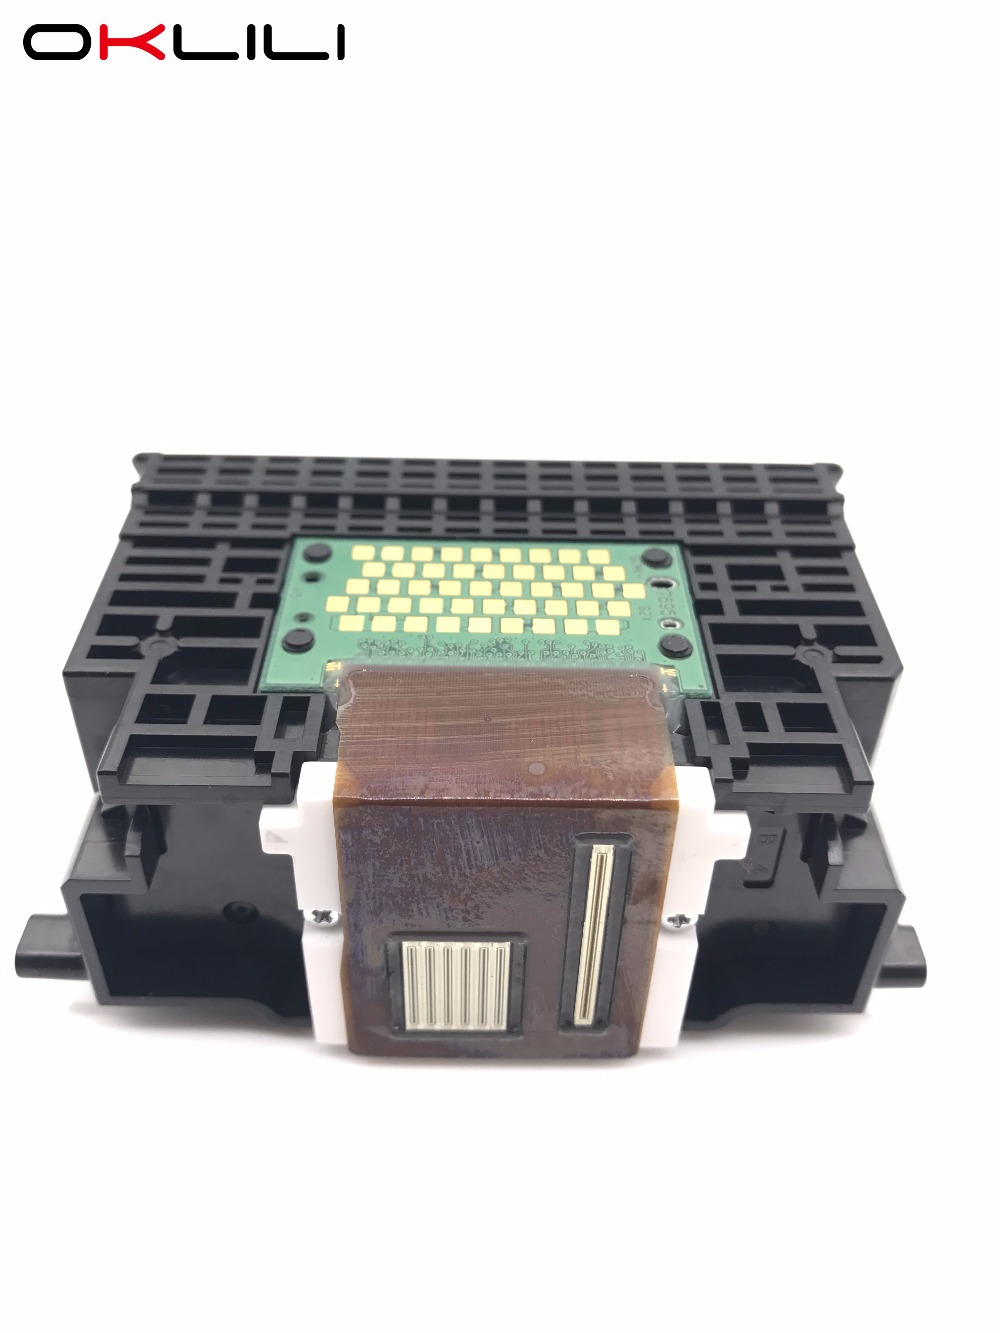 OKLILI ORIGINAL QY6-0075 QY6-0075-000 Printhead Print Head Printer Head for Canon iP5300 MP810 iP4500 MP610 MX850 oklili original qy6 0045 qy6 0045 000 printhead print head printer head for canon i550 pixus 550i